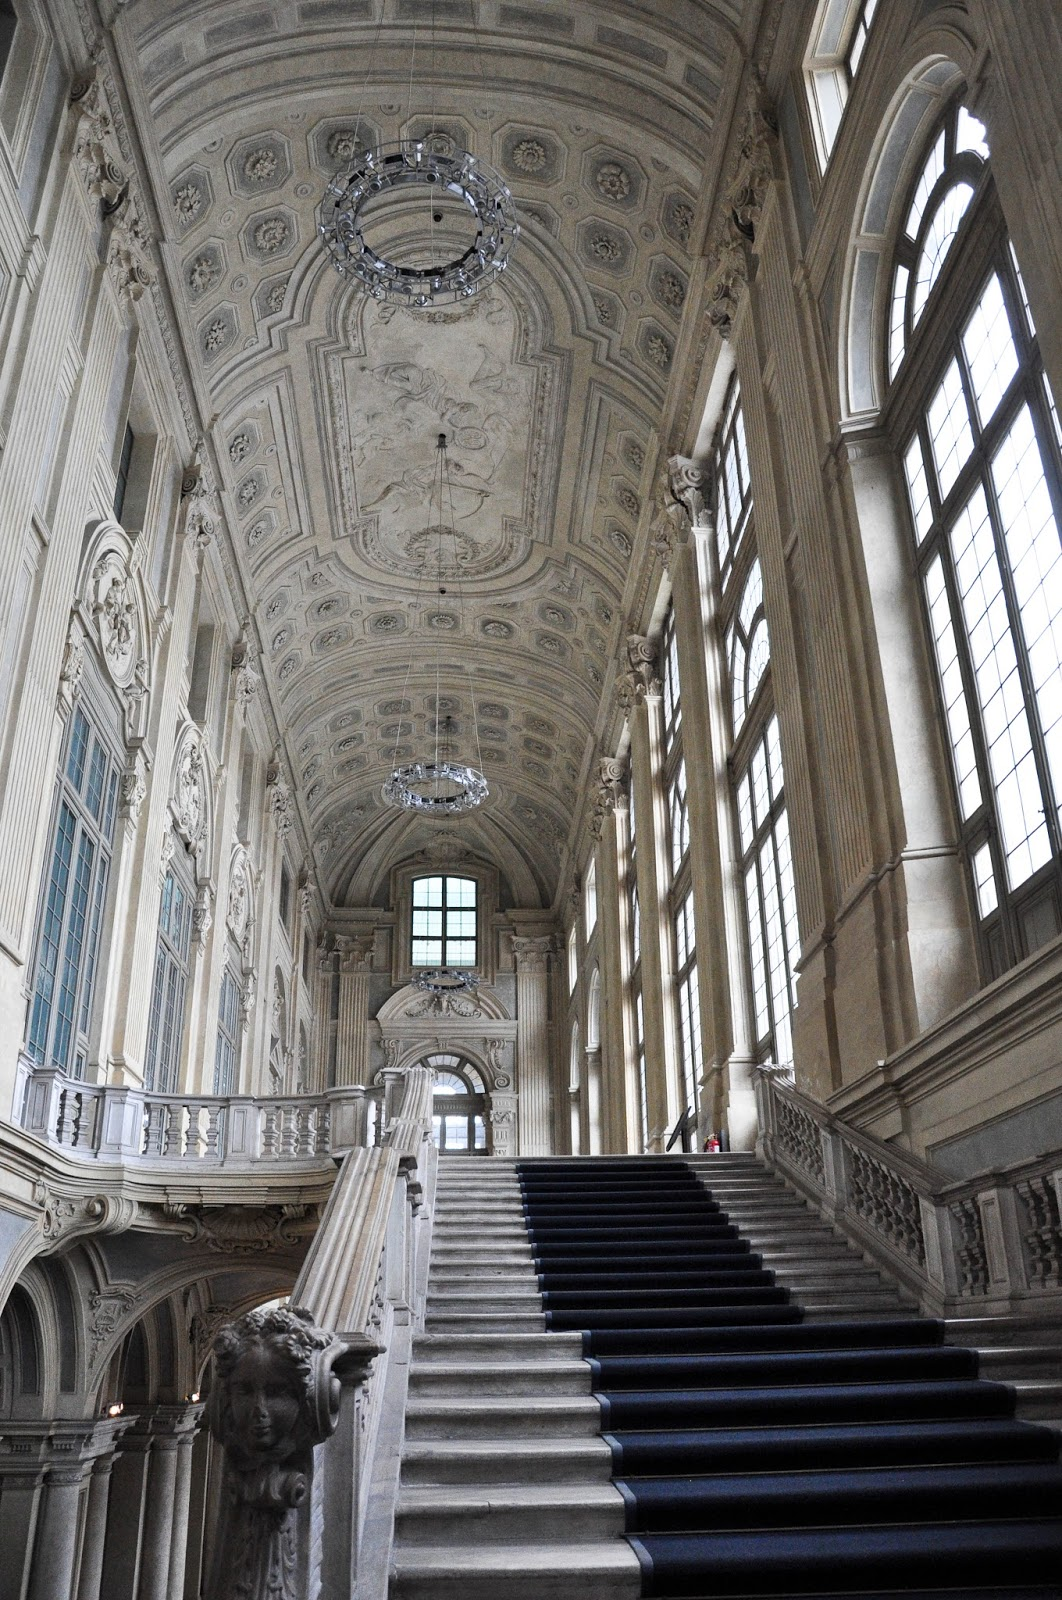 The upstair entrance hall, Palazzo Madama, Turin, Italy